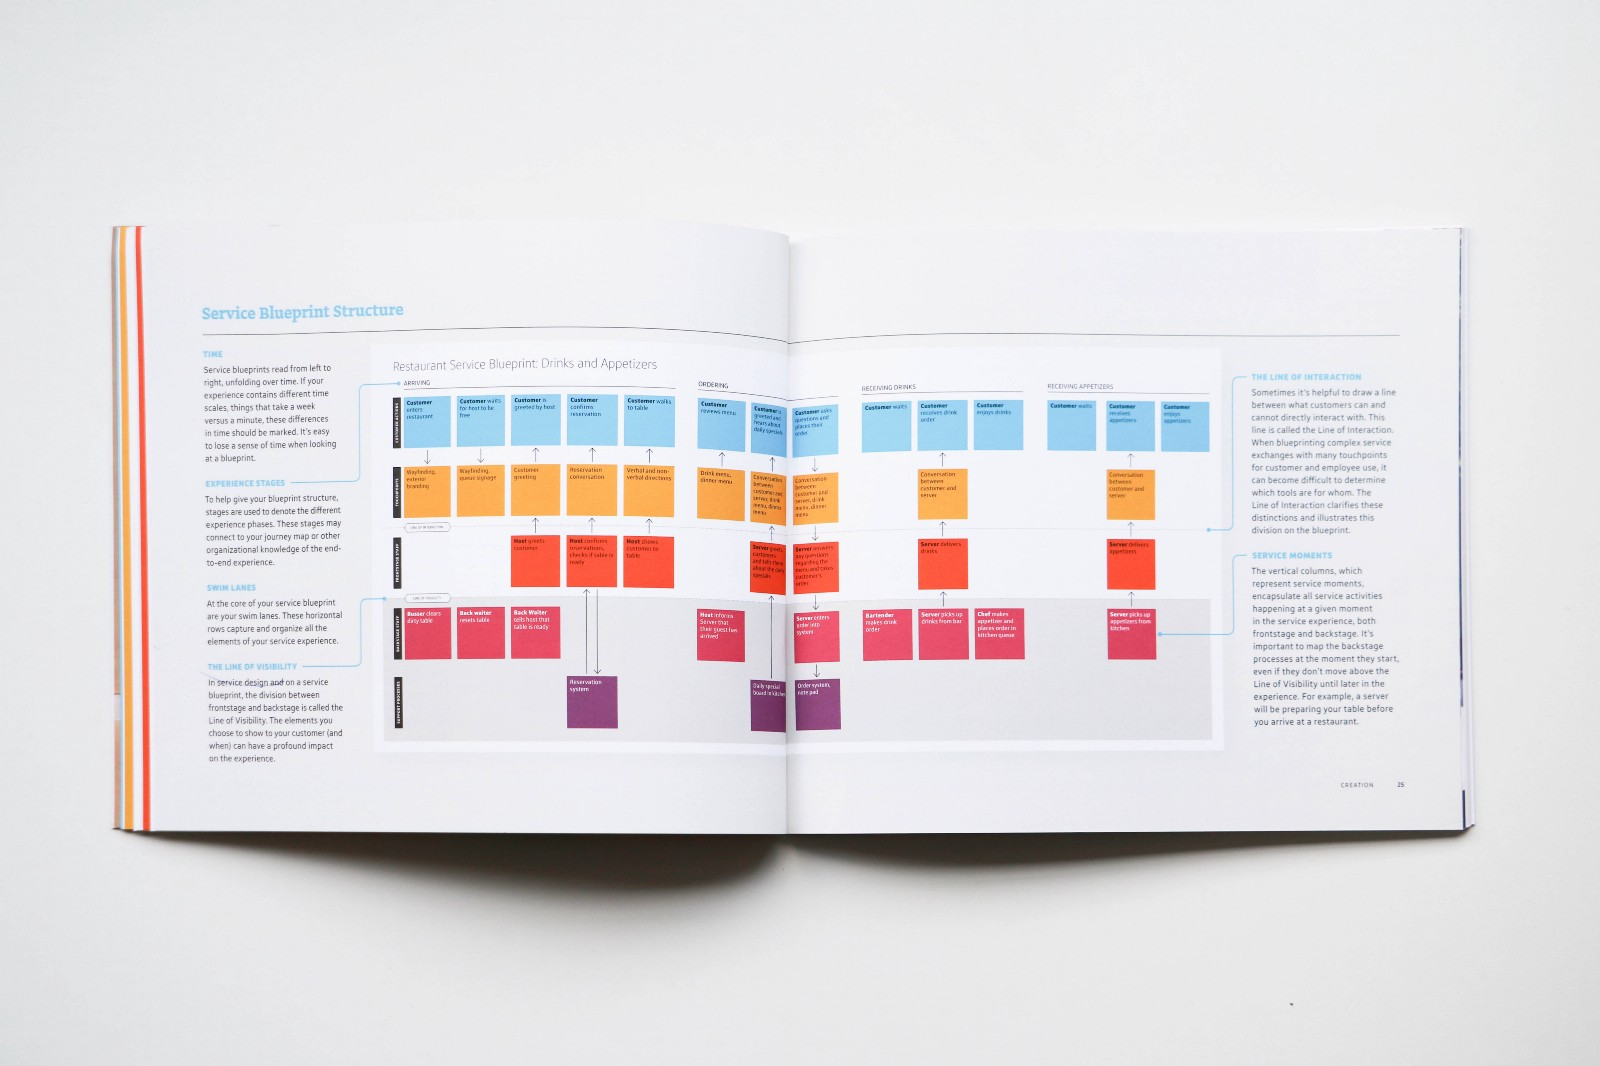 Download our guide to service blueprinting one design community download our guide to service blueprinting here malvernweather Gallery